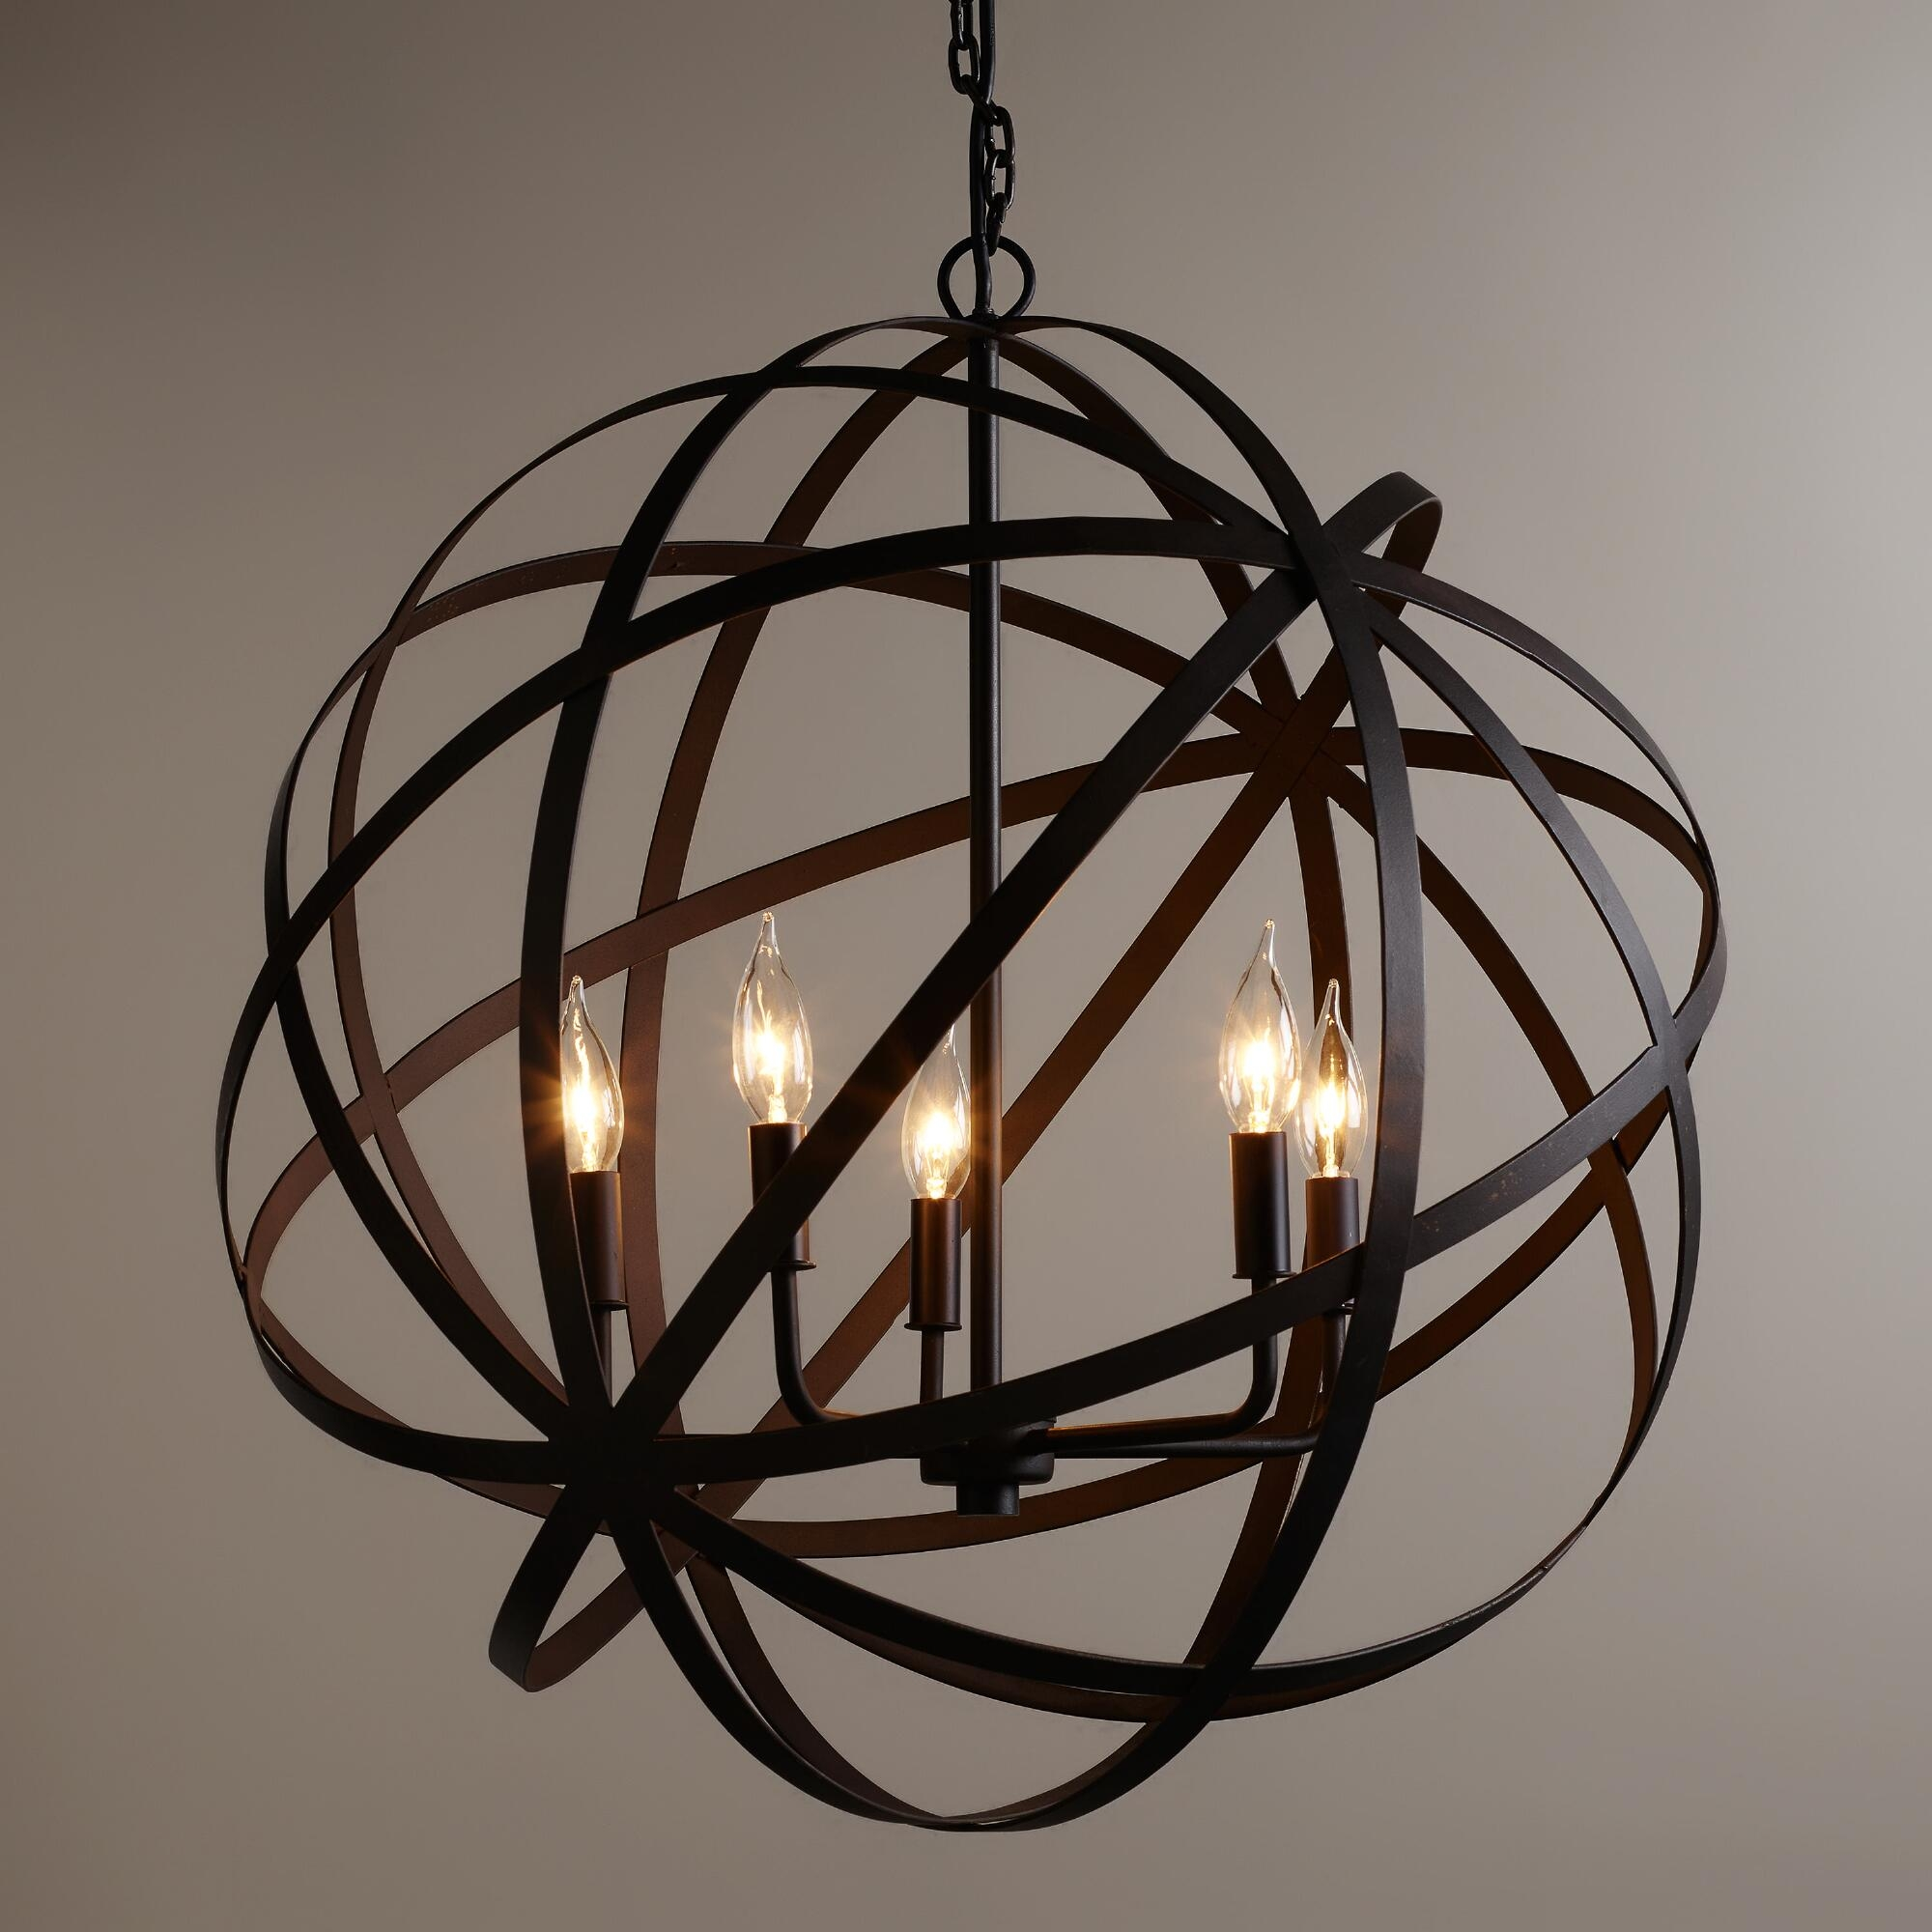 Brilliant Metal Chandelier On Classic Home Interior Design With Within Metal Chandeliers (Image 4 of 15)